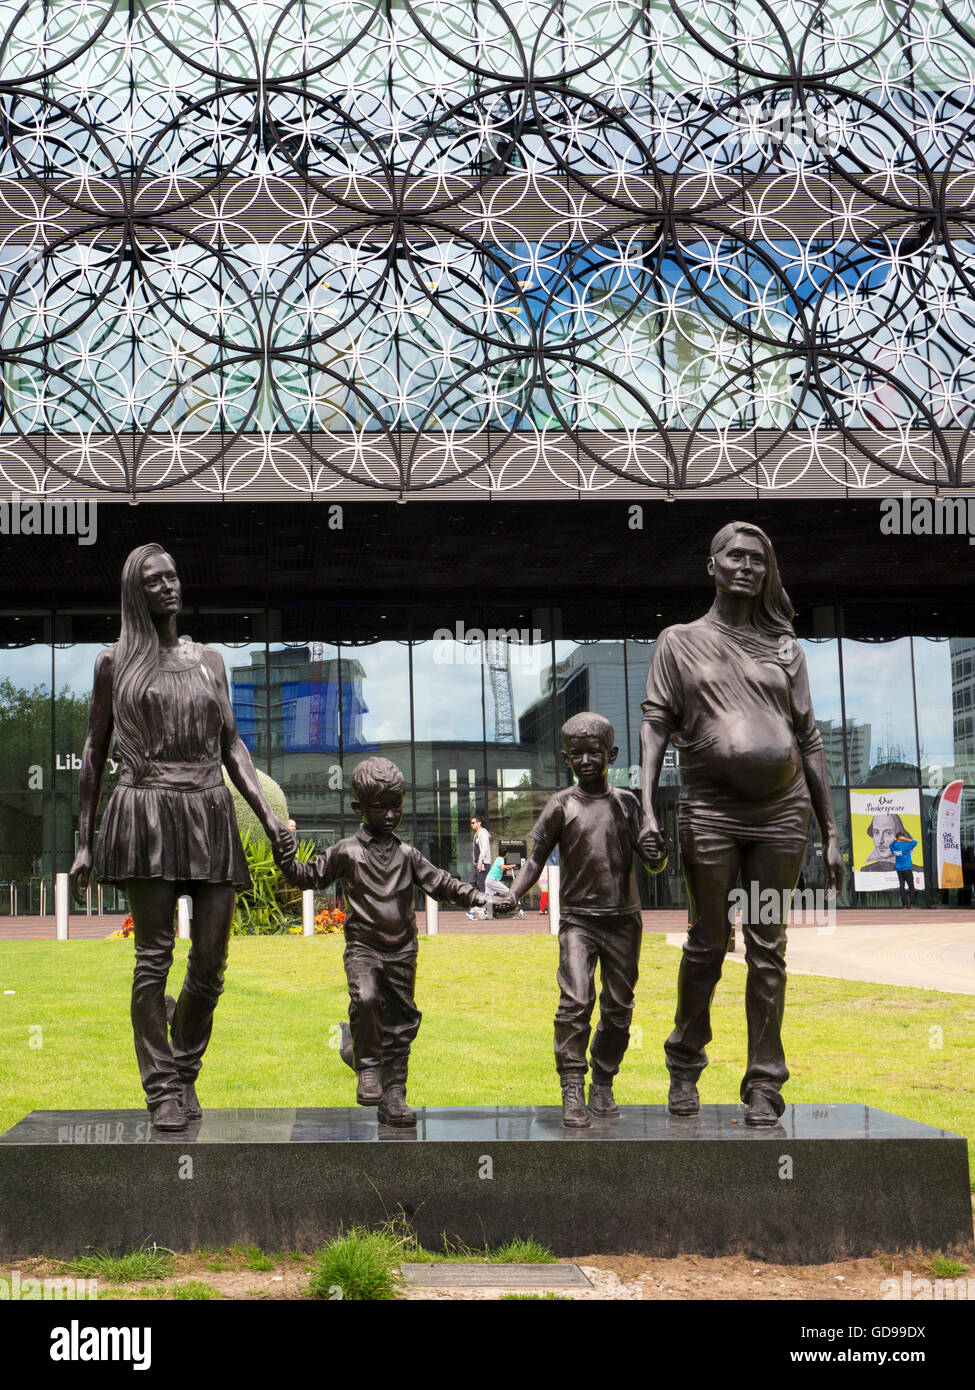 A Real Birmingham Family Sculpture by Gillian Wearing in Centenary Square Birmingham West Midlands England - Stock Image